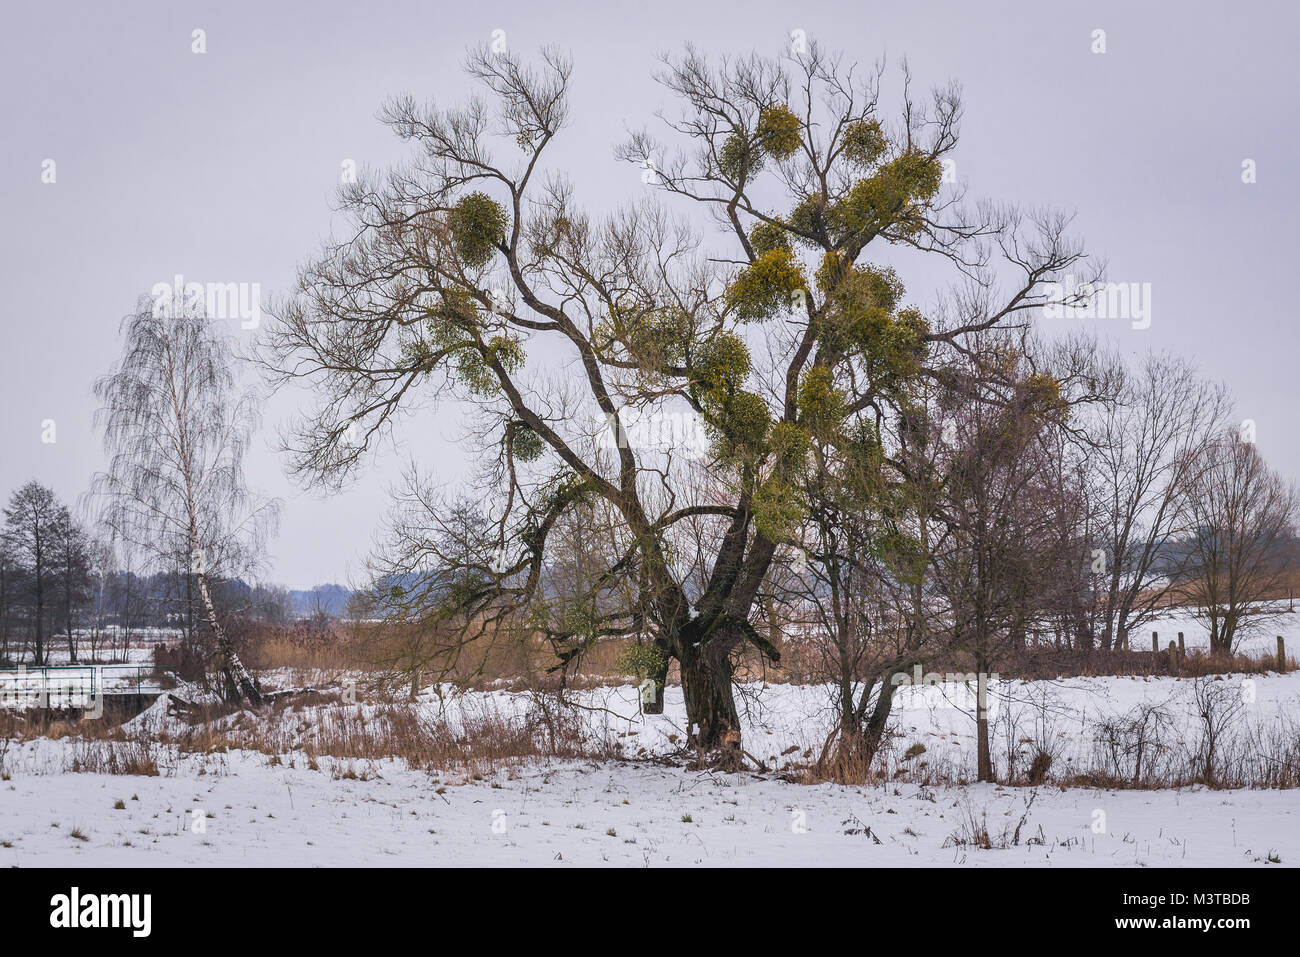 Mistletoe on a tree in Soce village in Podlaskie Voivodeship of northeastern Poland - Stock Image